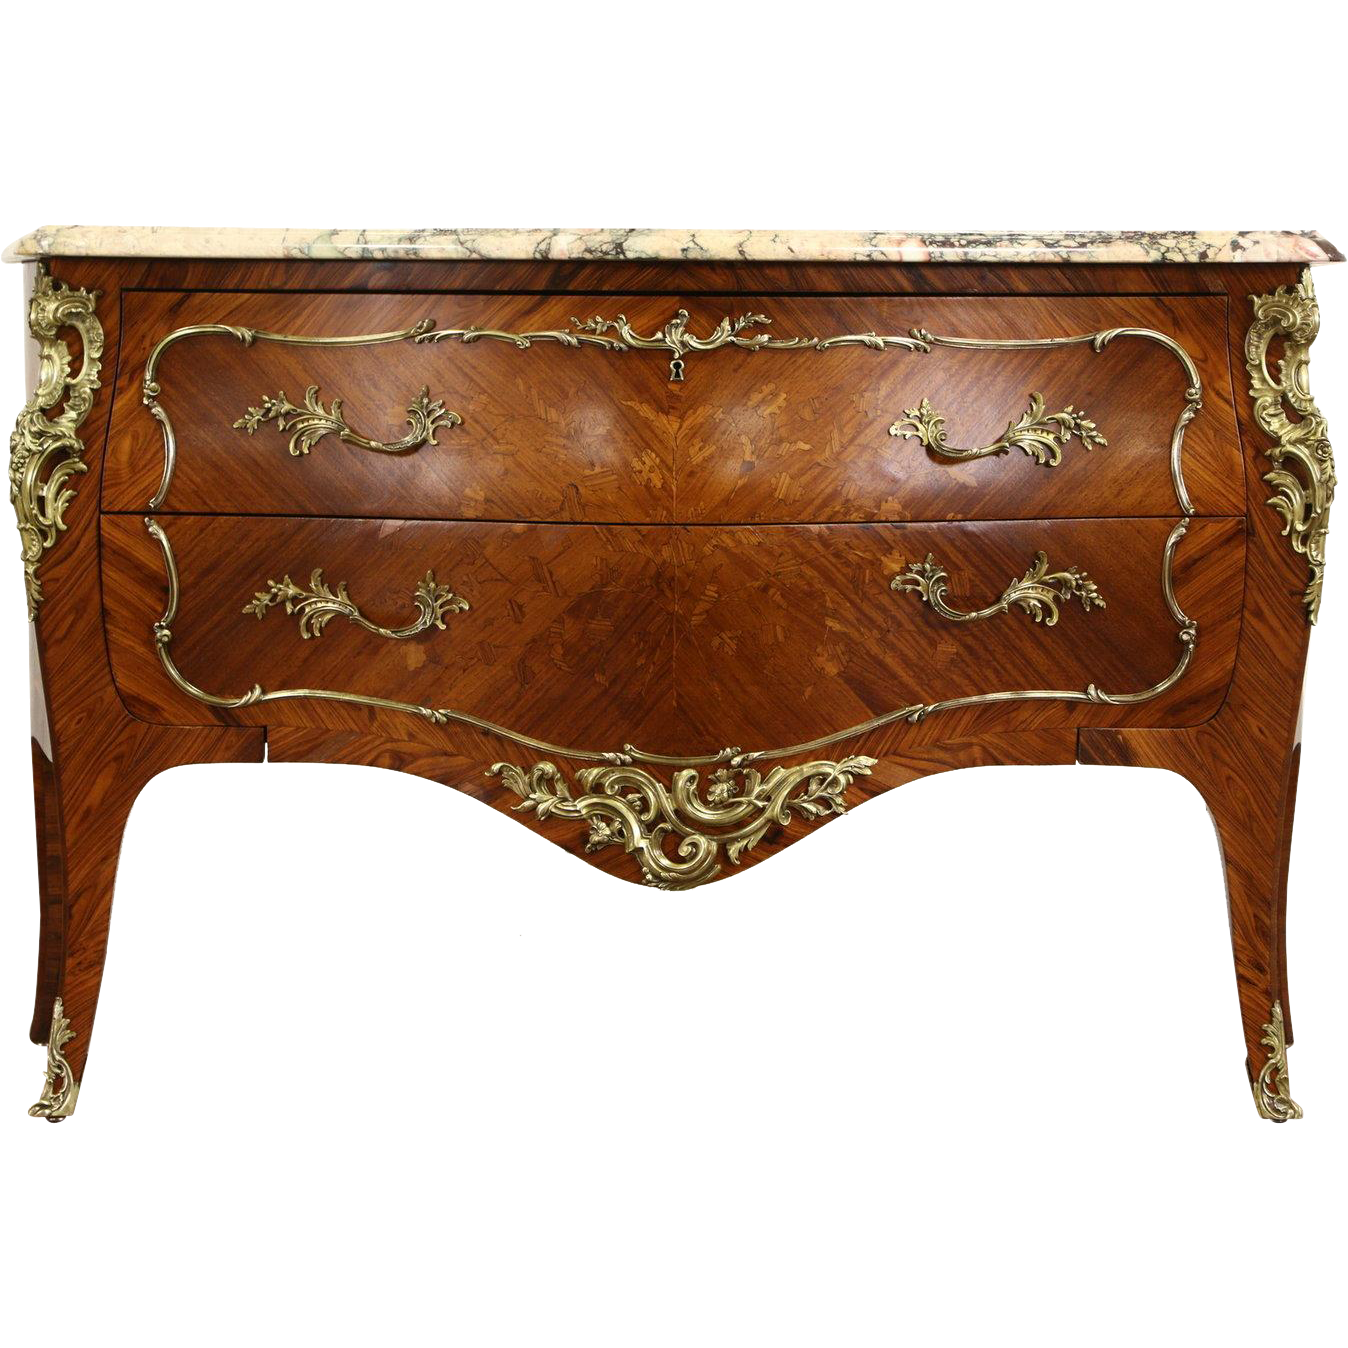 French Bombe 1930's Vintage Commode or Chest, Marble Top, Tulipwood Marquetry